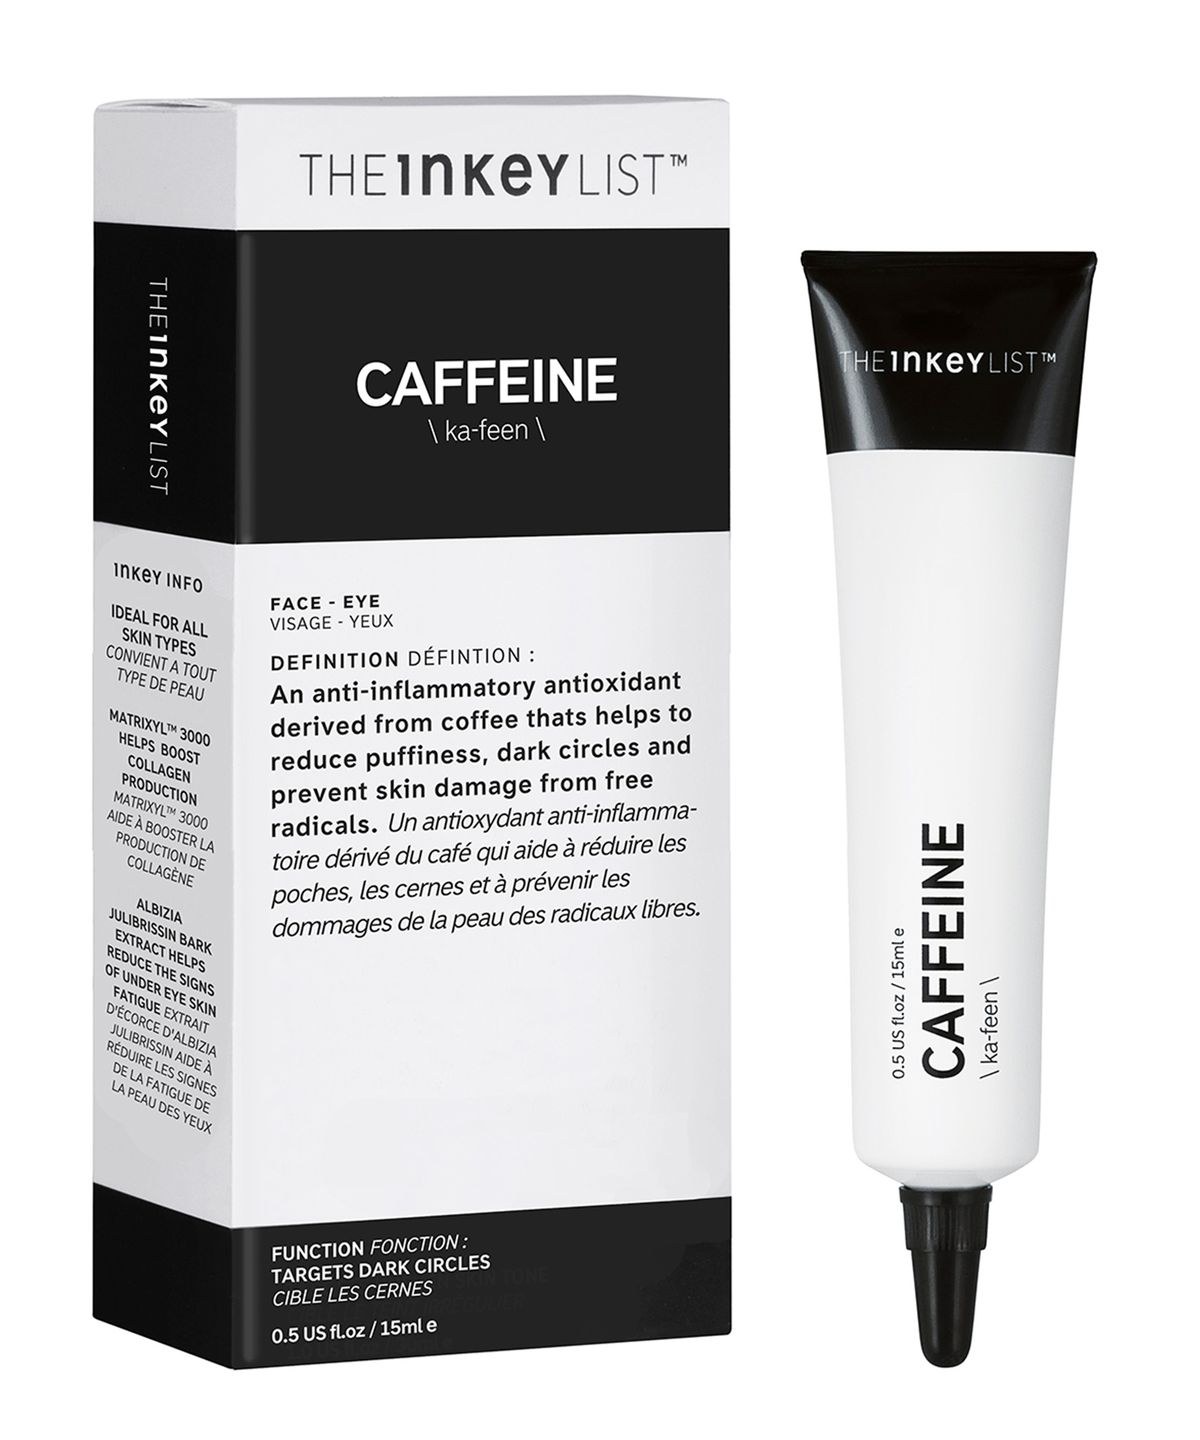 The Inkey List Caffeine Serum